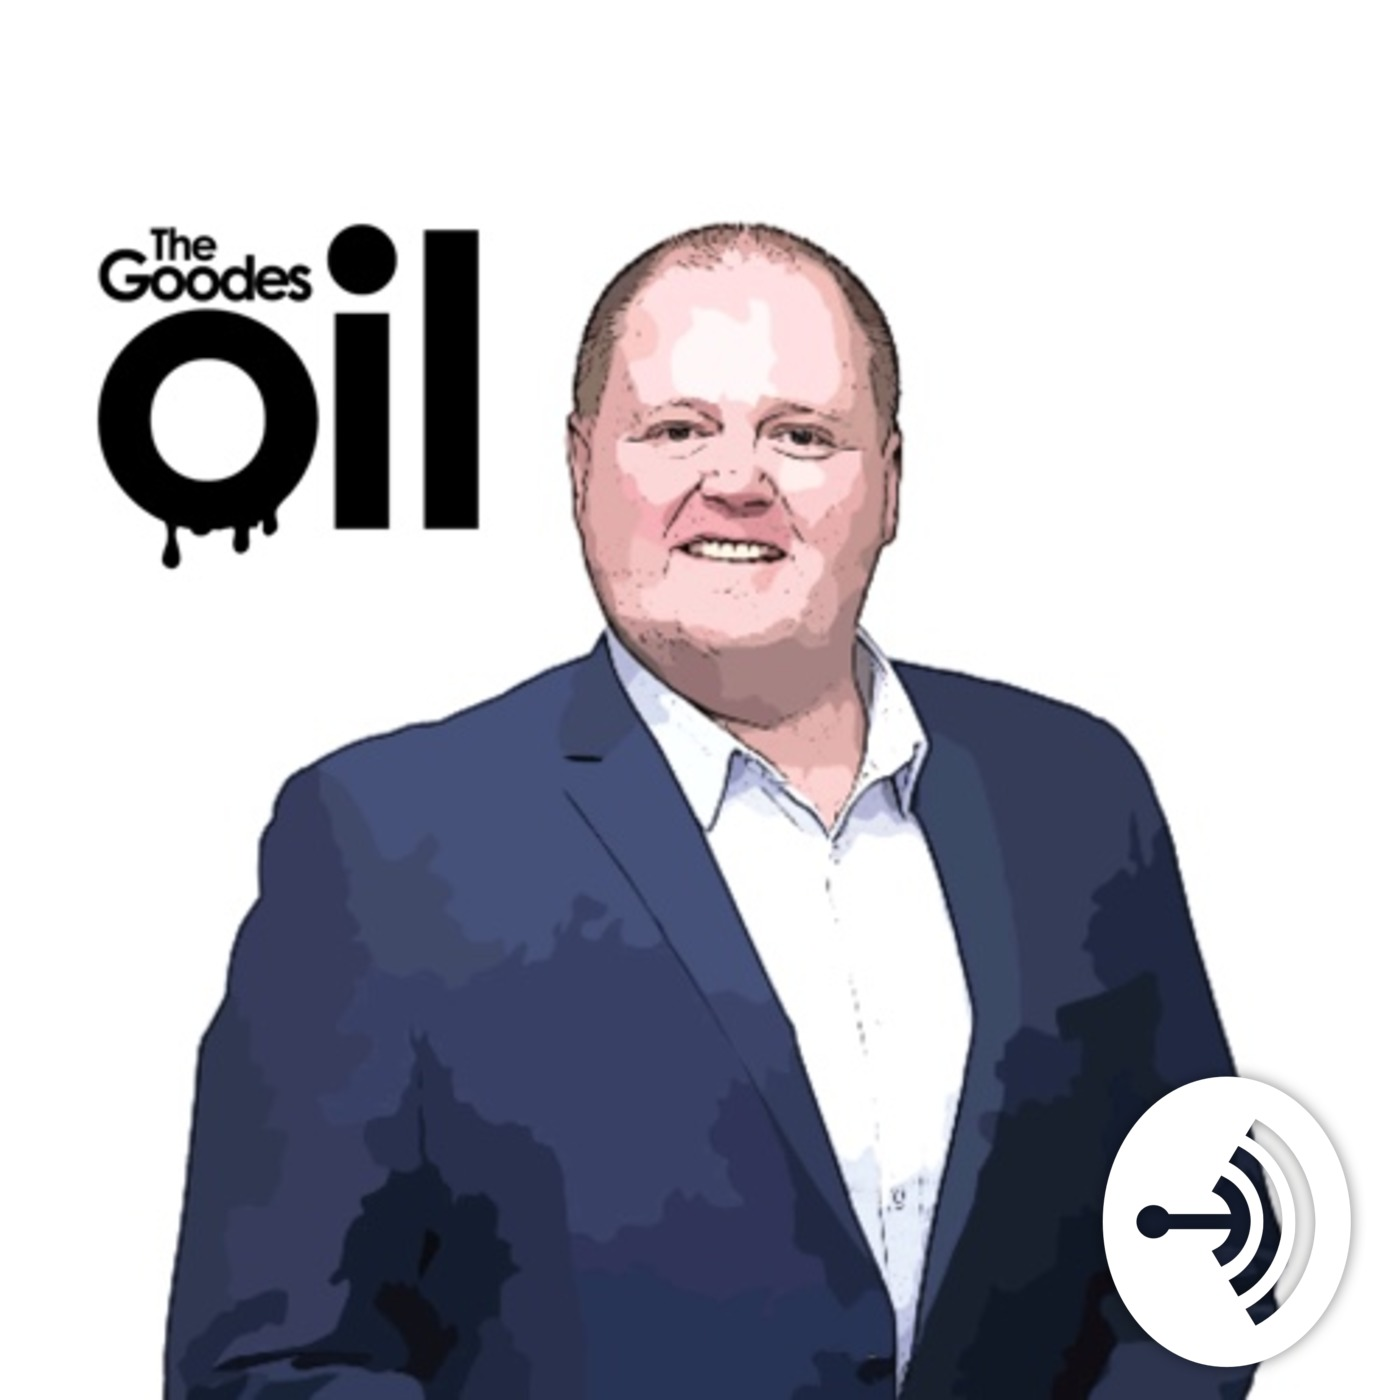 Interview with Brian Parker - CIO at 86 400